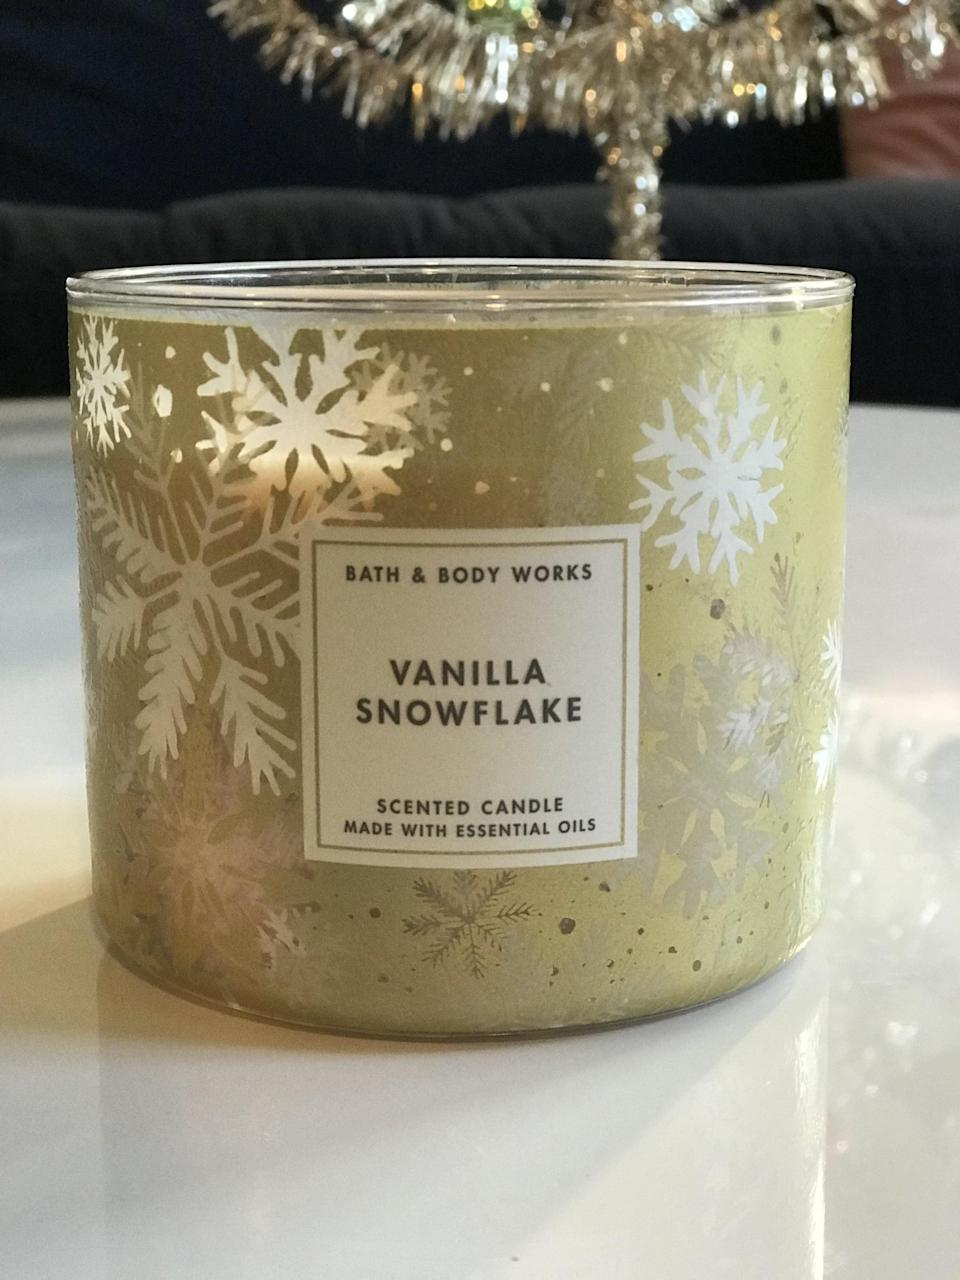 <p><span>Vanilla Snowflake 3-Wick Candle</span> ($15, originally $25)</p> <p><strong>What It Smells Like:</strong> Subtle vanilla, but not too sweet. A perfect balance.</p>